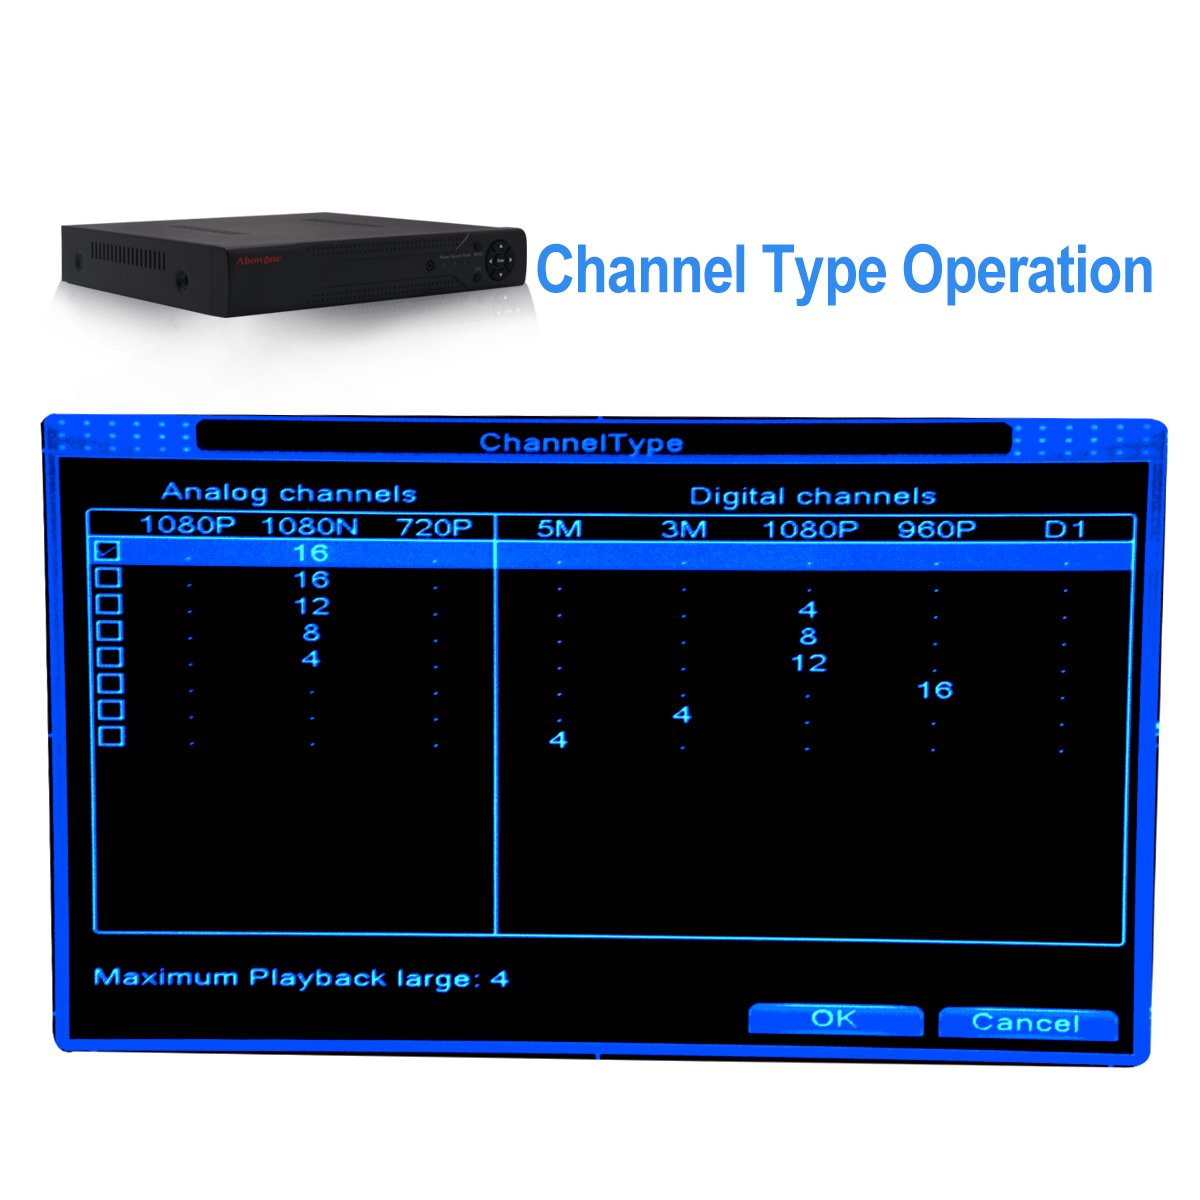 16 Channels DVR Recorder Hybrid DVR H.264 CCTV Security Camera System Digital Video Recorder(No hard drive included) by Abowone (Image #2)